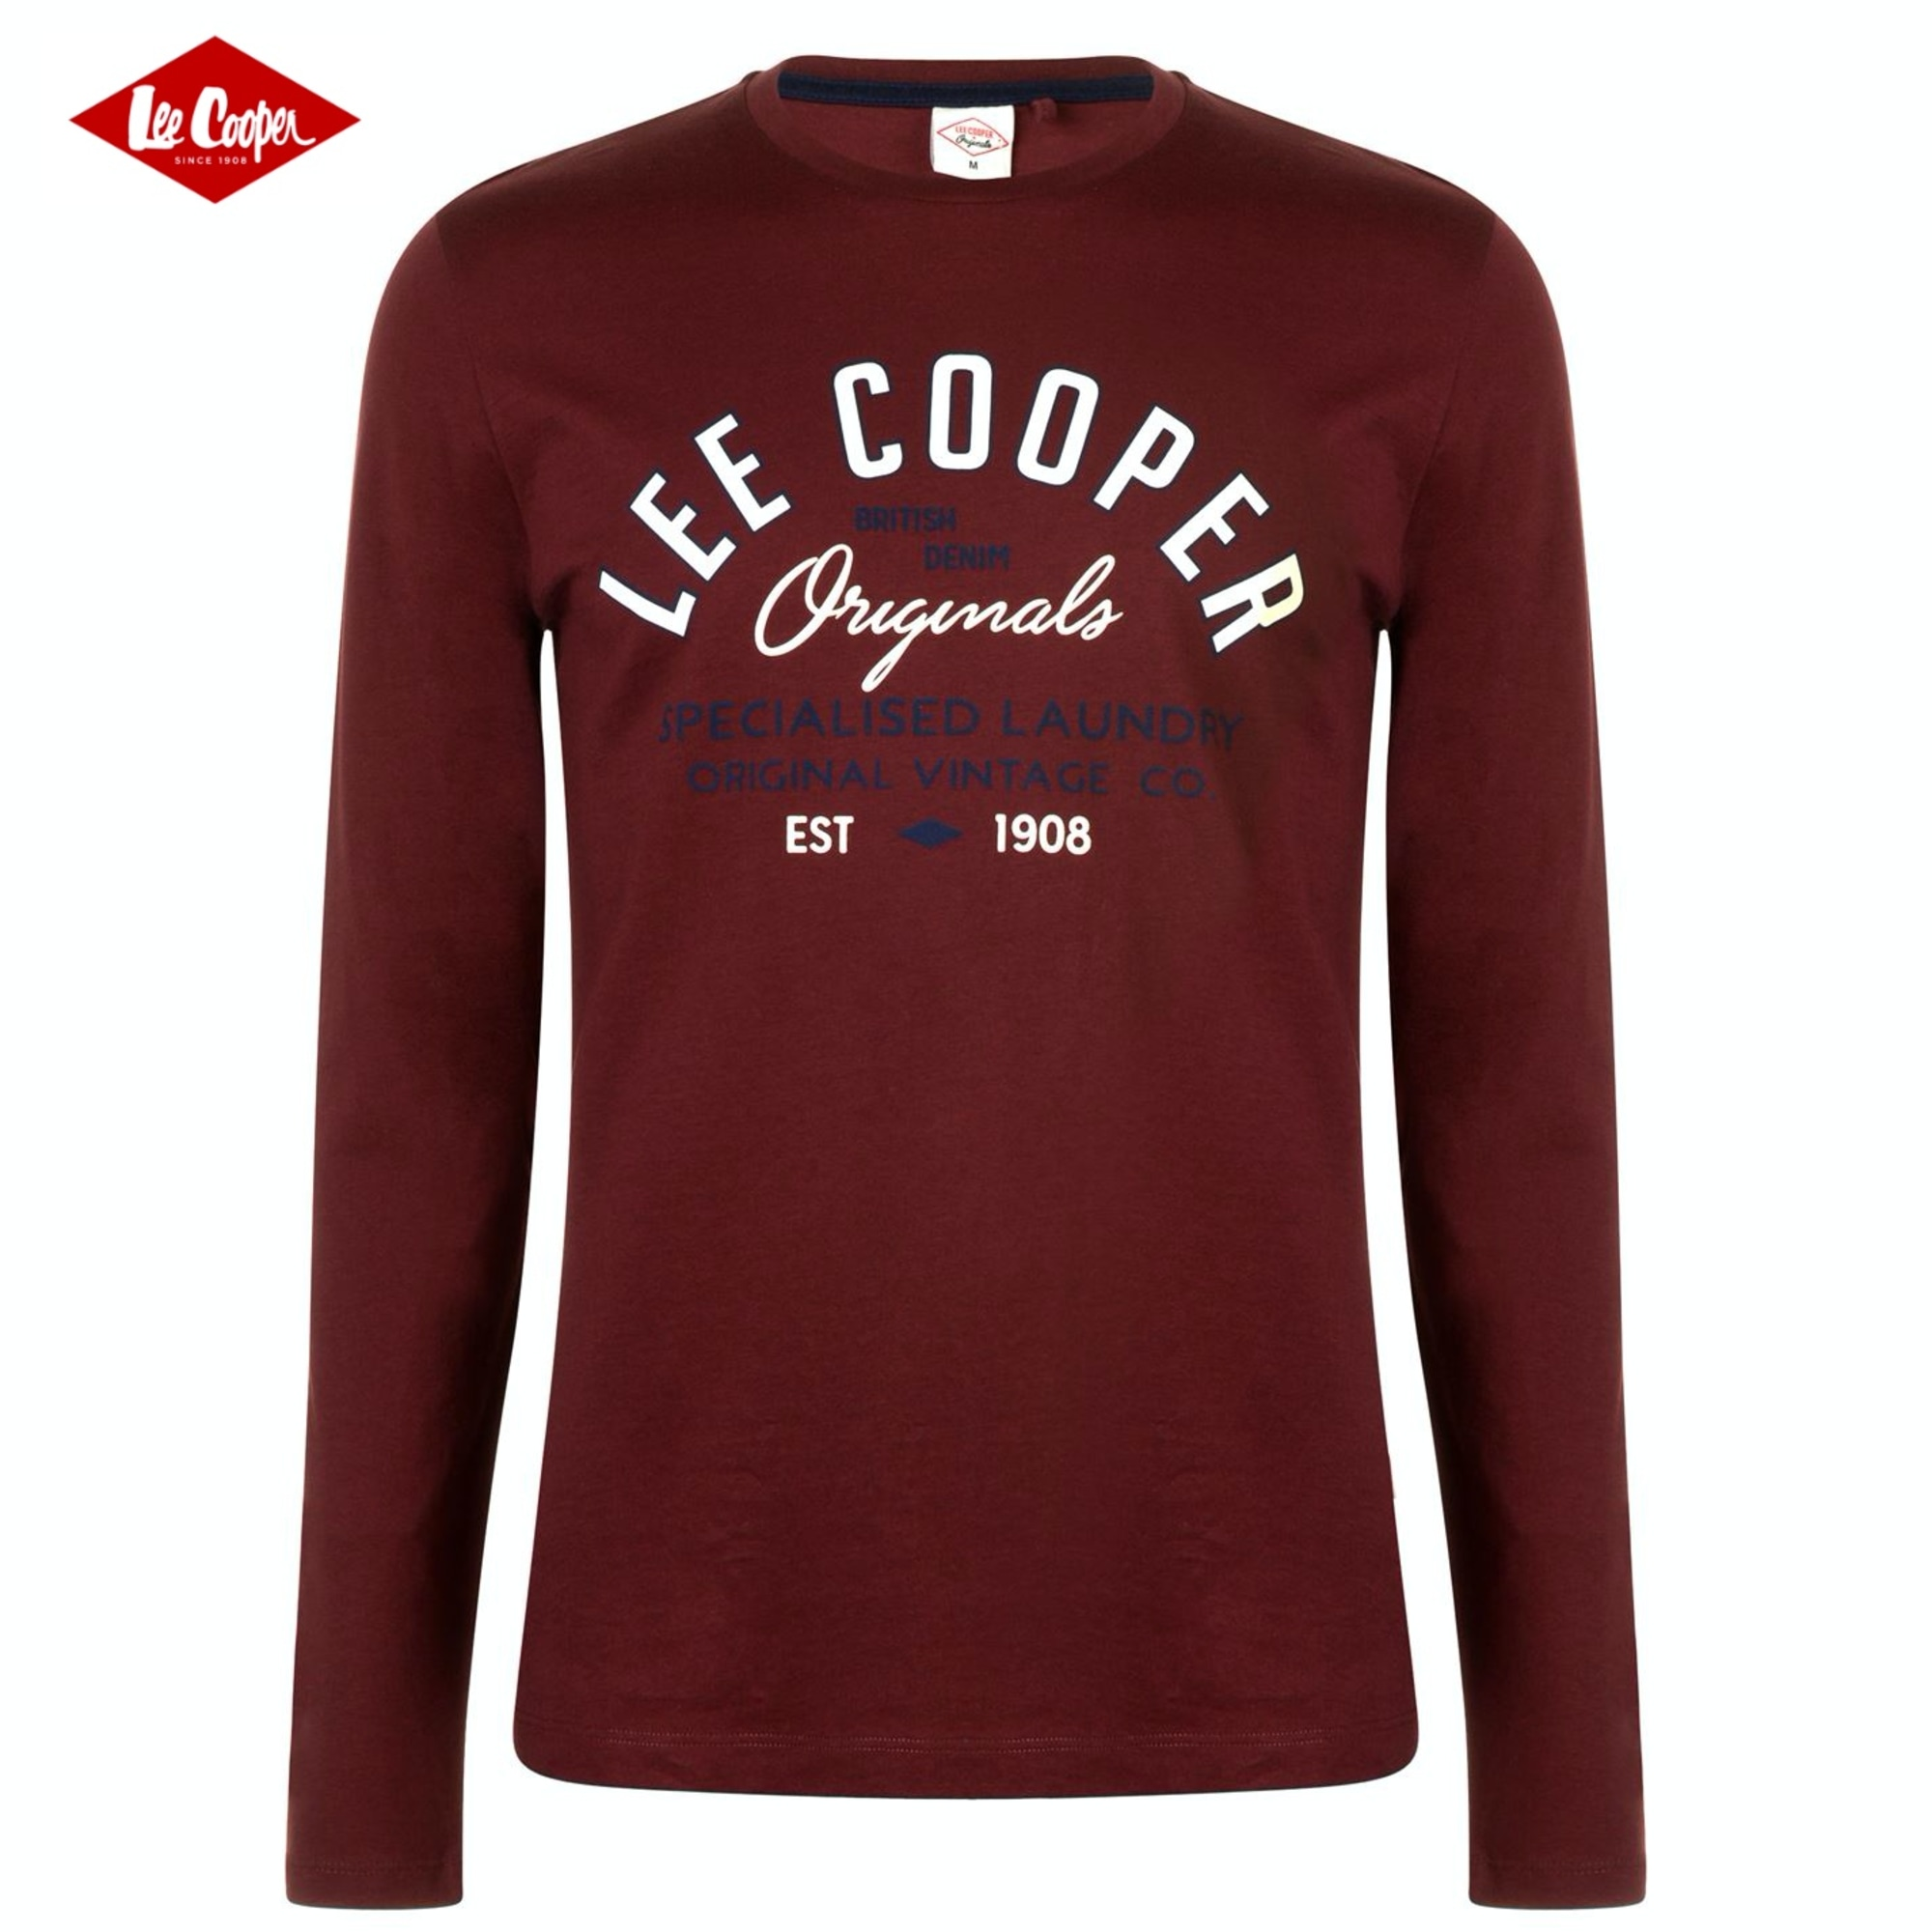 T-shirt LEE COOPER Red, burgundy